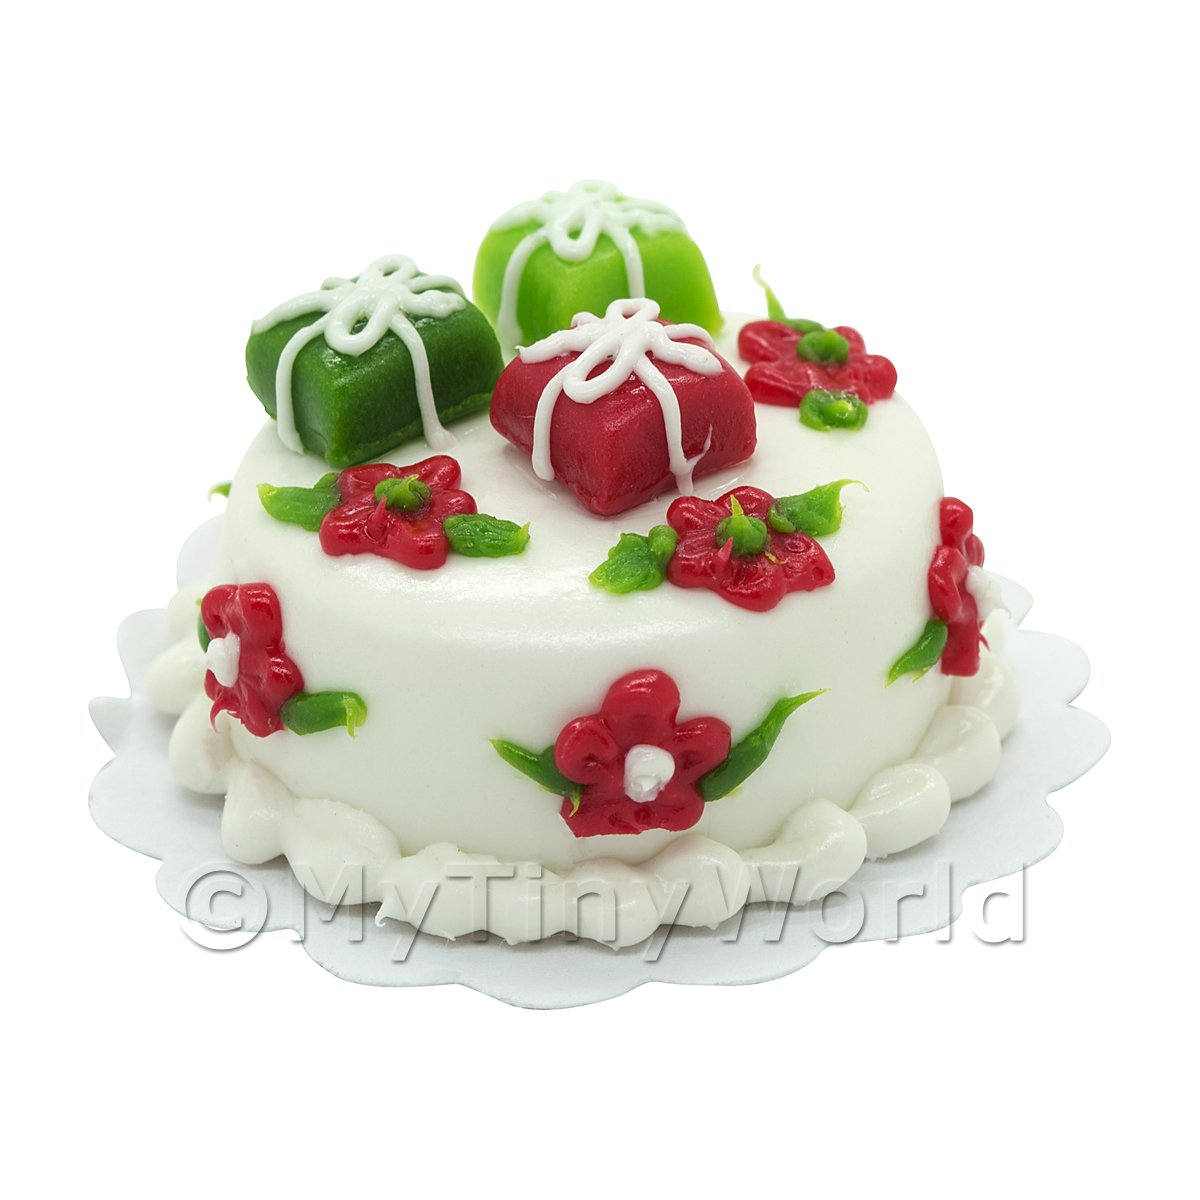 Dolls House Miniature Christmas Cake With Three Parcels